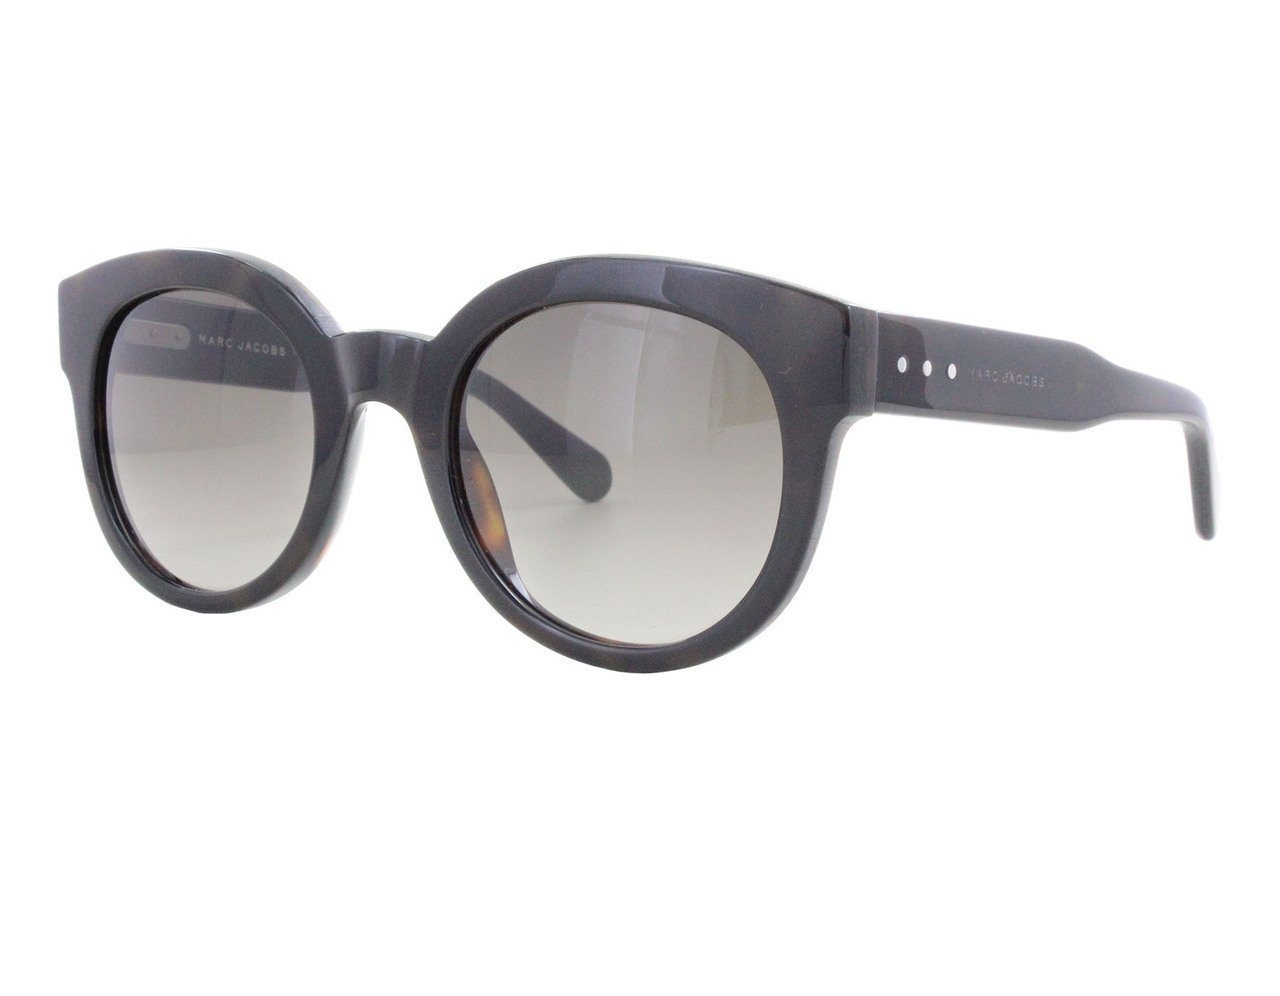 Marc Jacobs MJ588S-5YAHA - Sunglasses - livesunglasses-com